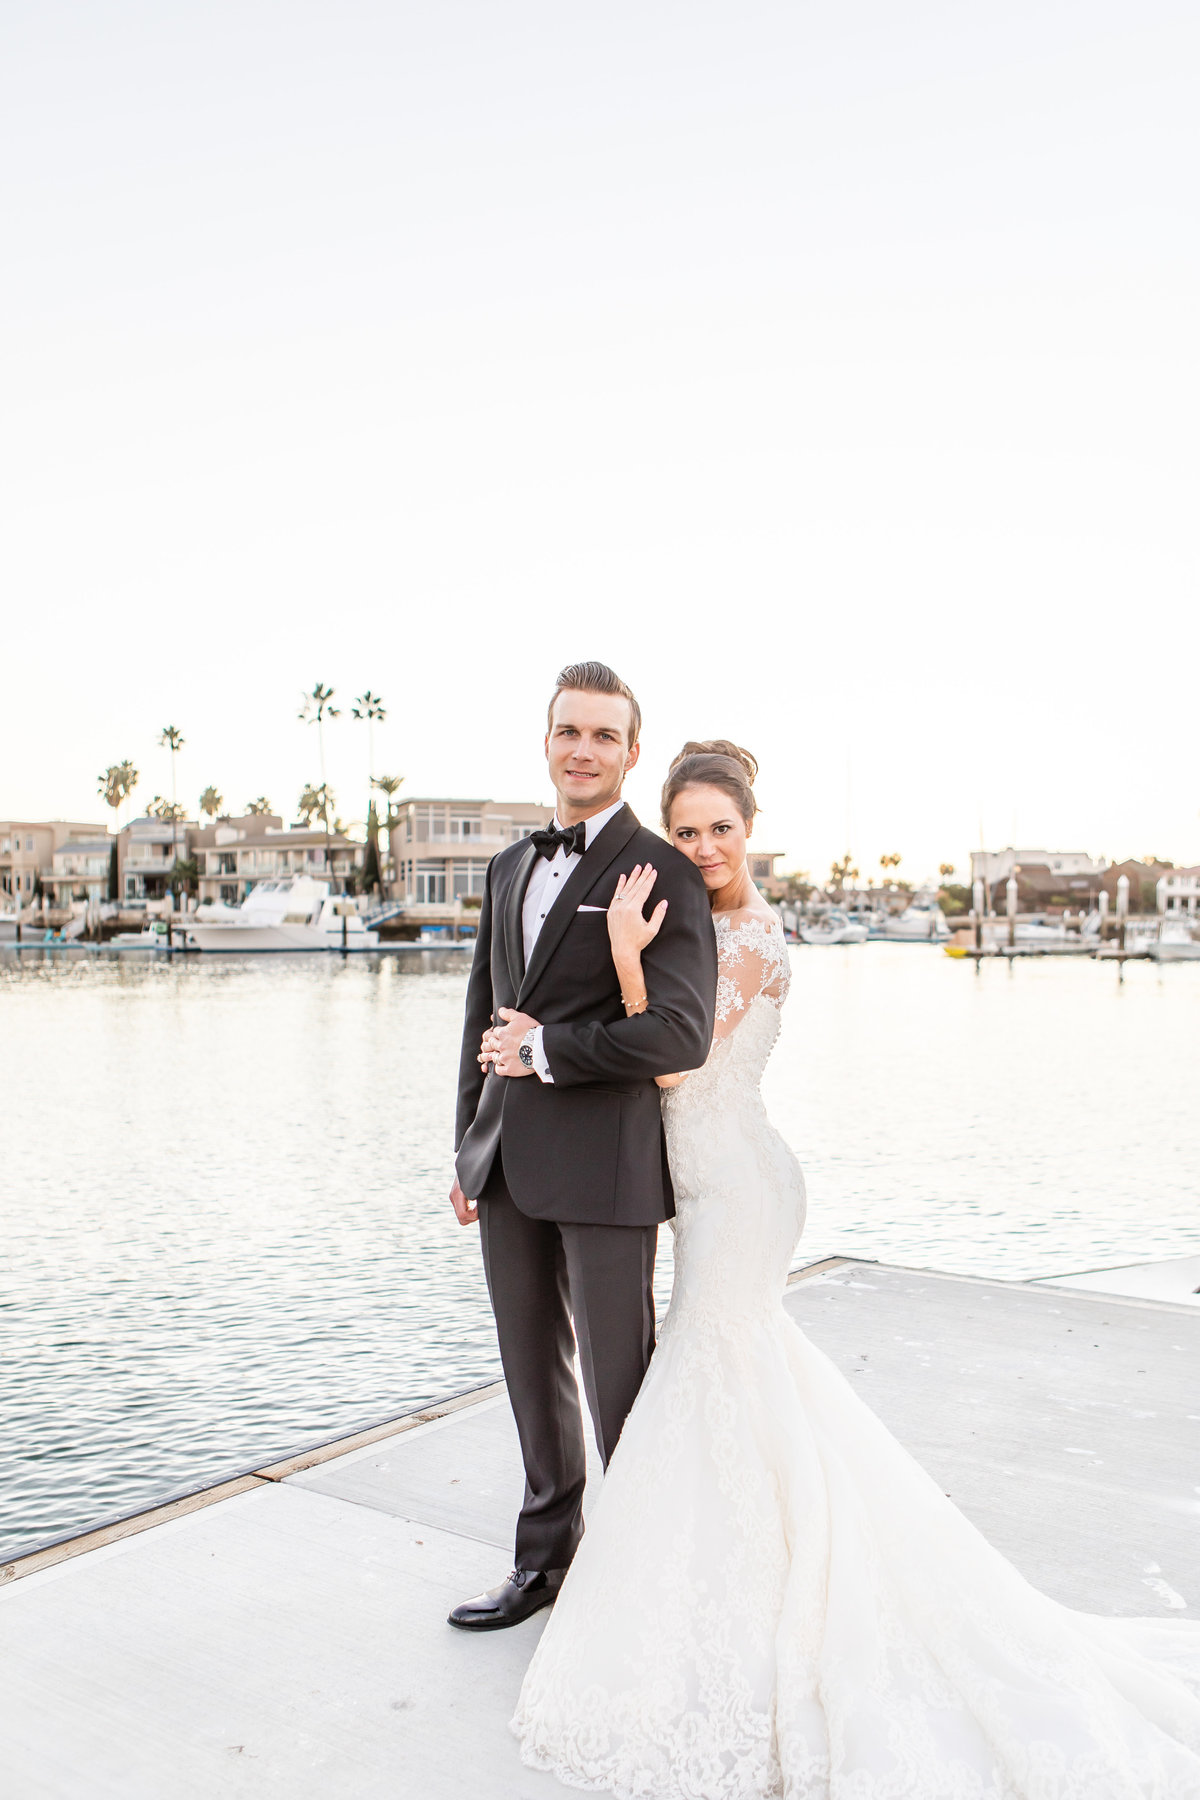 San Diego Wedding Photographer - Southern California Wedding Photographer - San Diego Photographer - San Diego Elopement Photographer 42